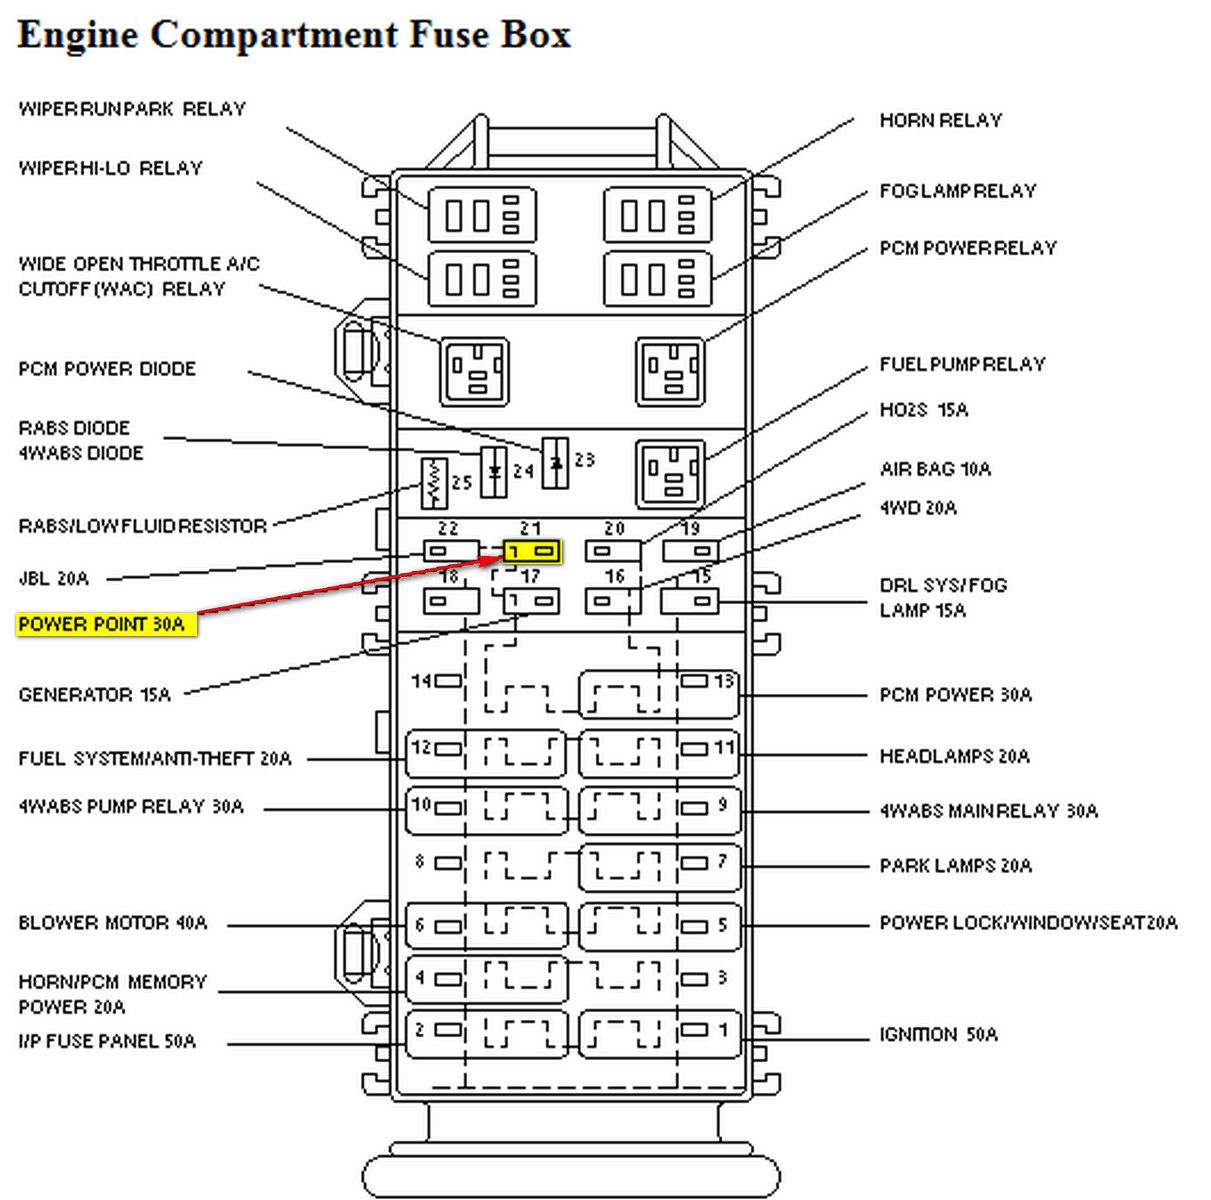 8a55967da7ae1bd251b795845886bd24 96 explorer fuse panel schematic ford explorer 4x4 hello, 1996 2008 ford ranger fuse box diagram at honlapkeszites.co